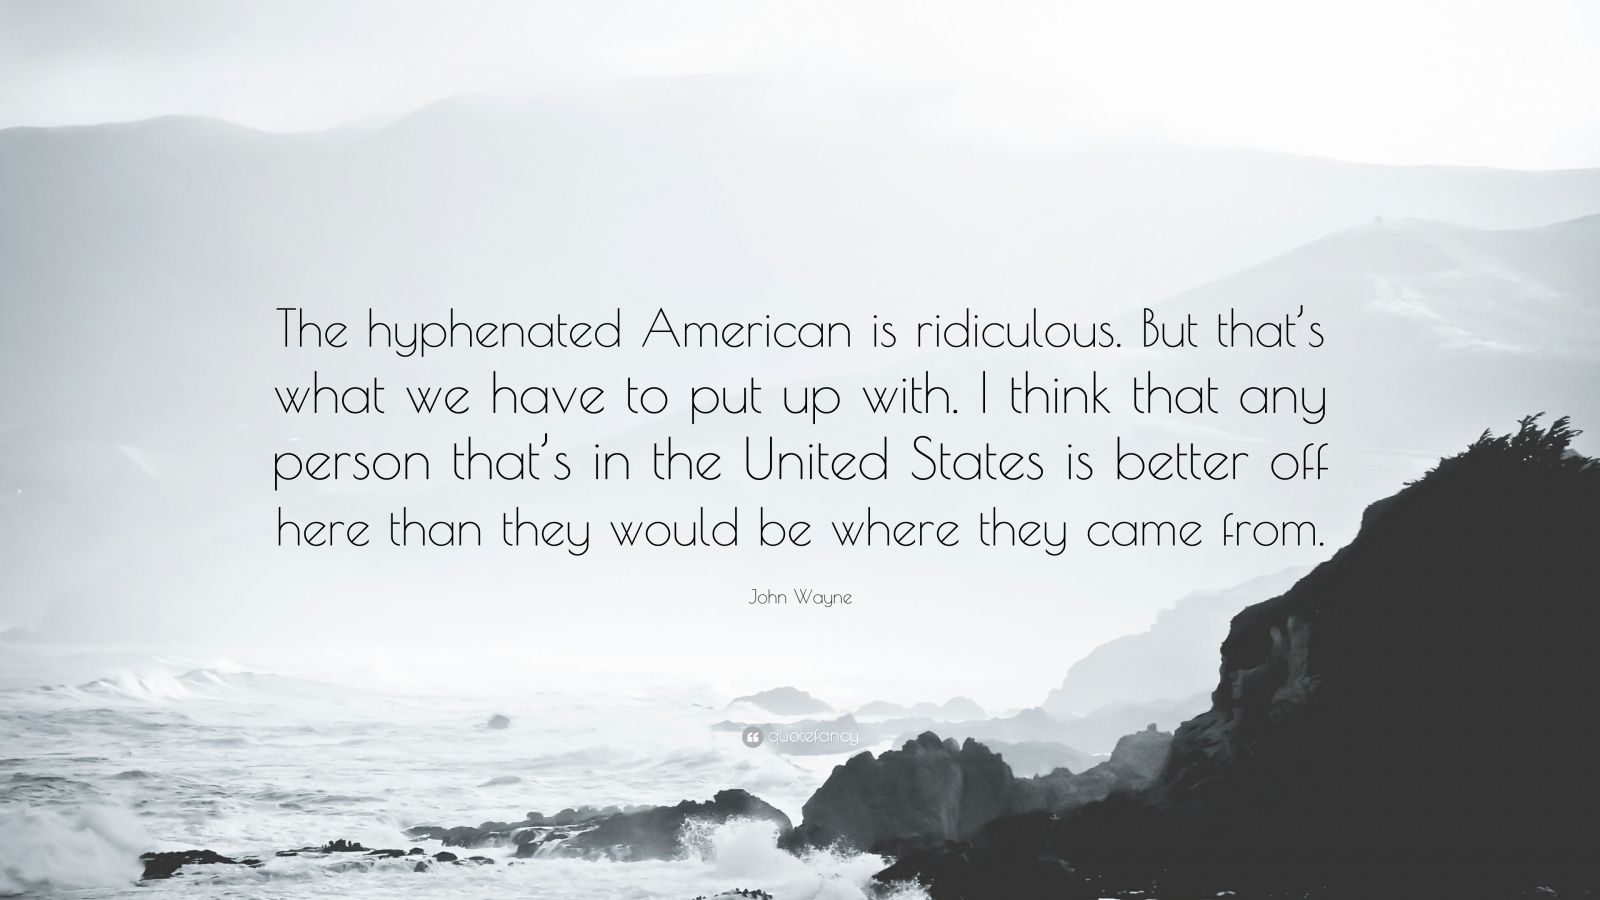 """John Wayne Quote: """"The hyphenated American is ridiculous. But that's what we have to put up with. I think that any person that's in the United States is better off here than they would be where they came from."""""""